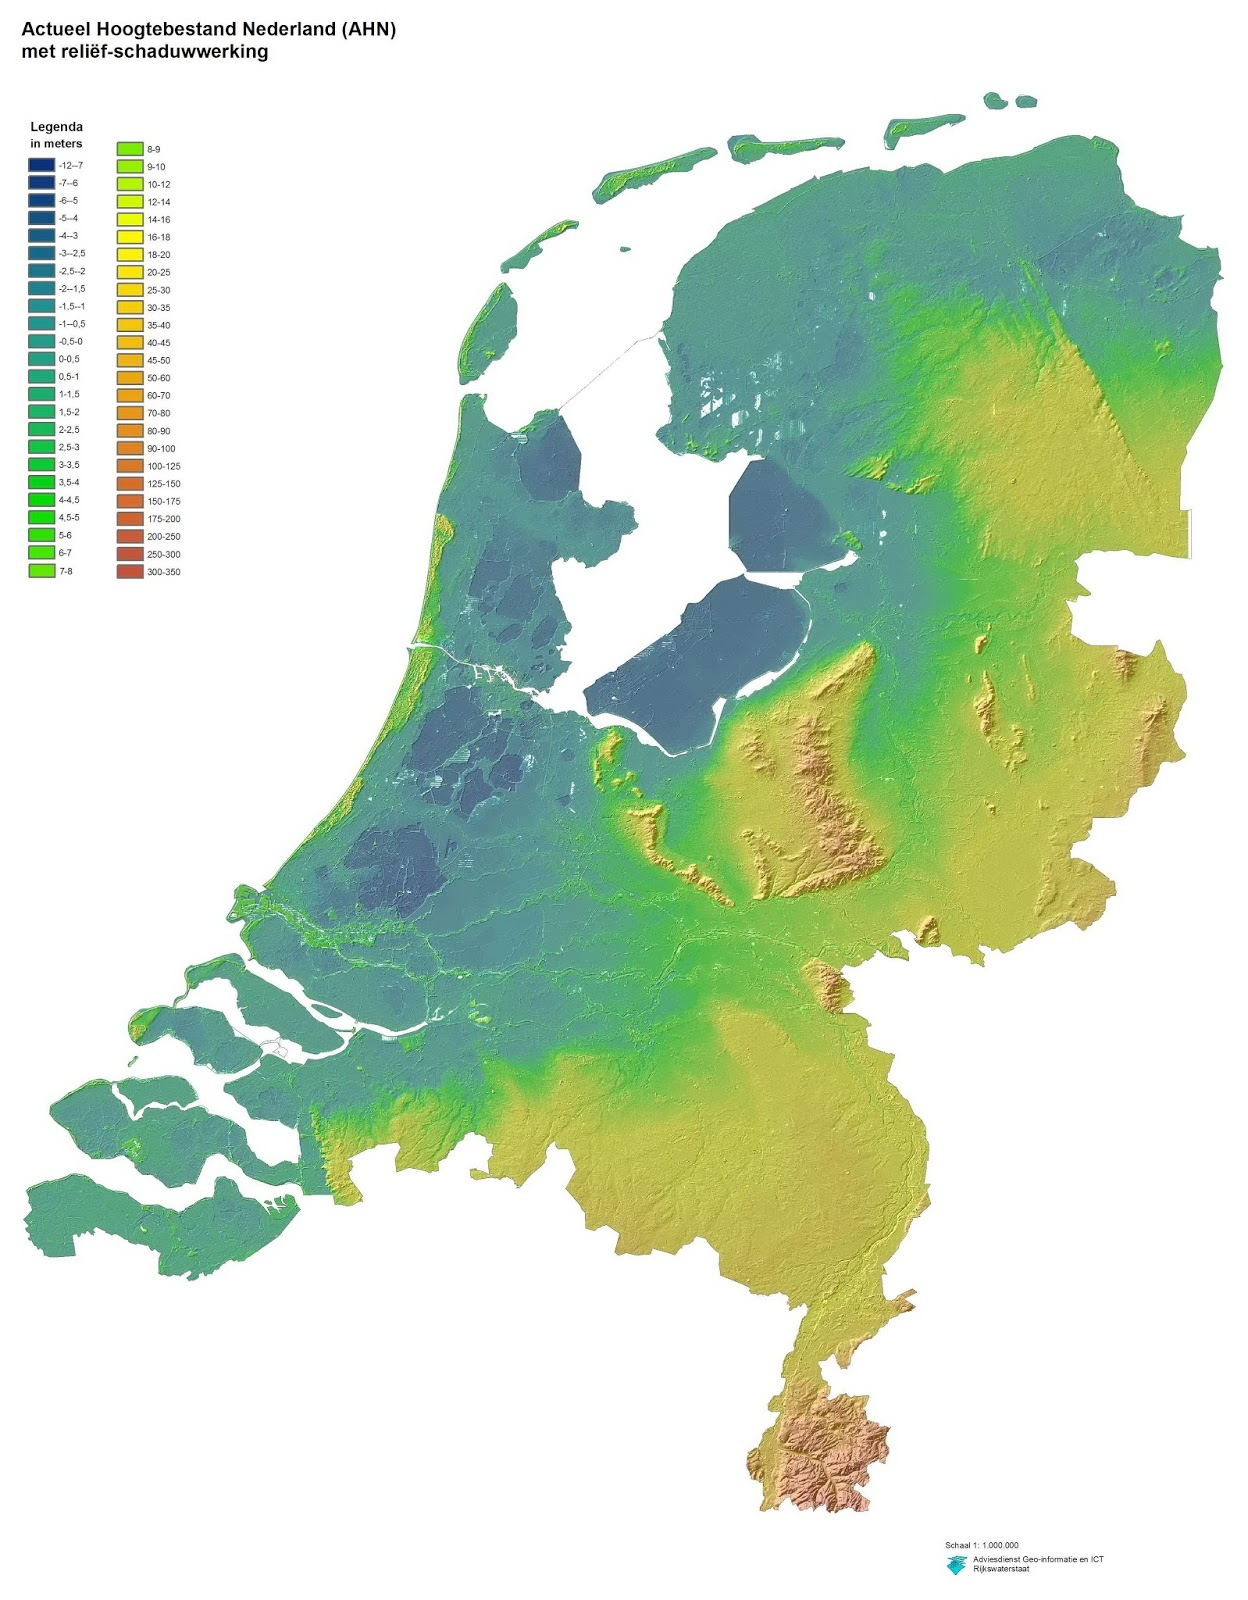 Very detailed relief map of The Netherlands